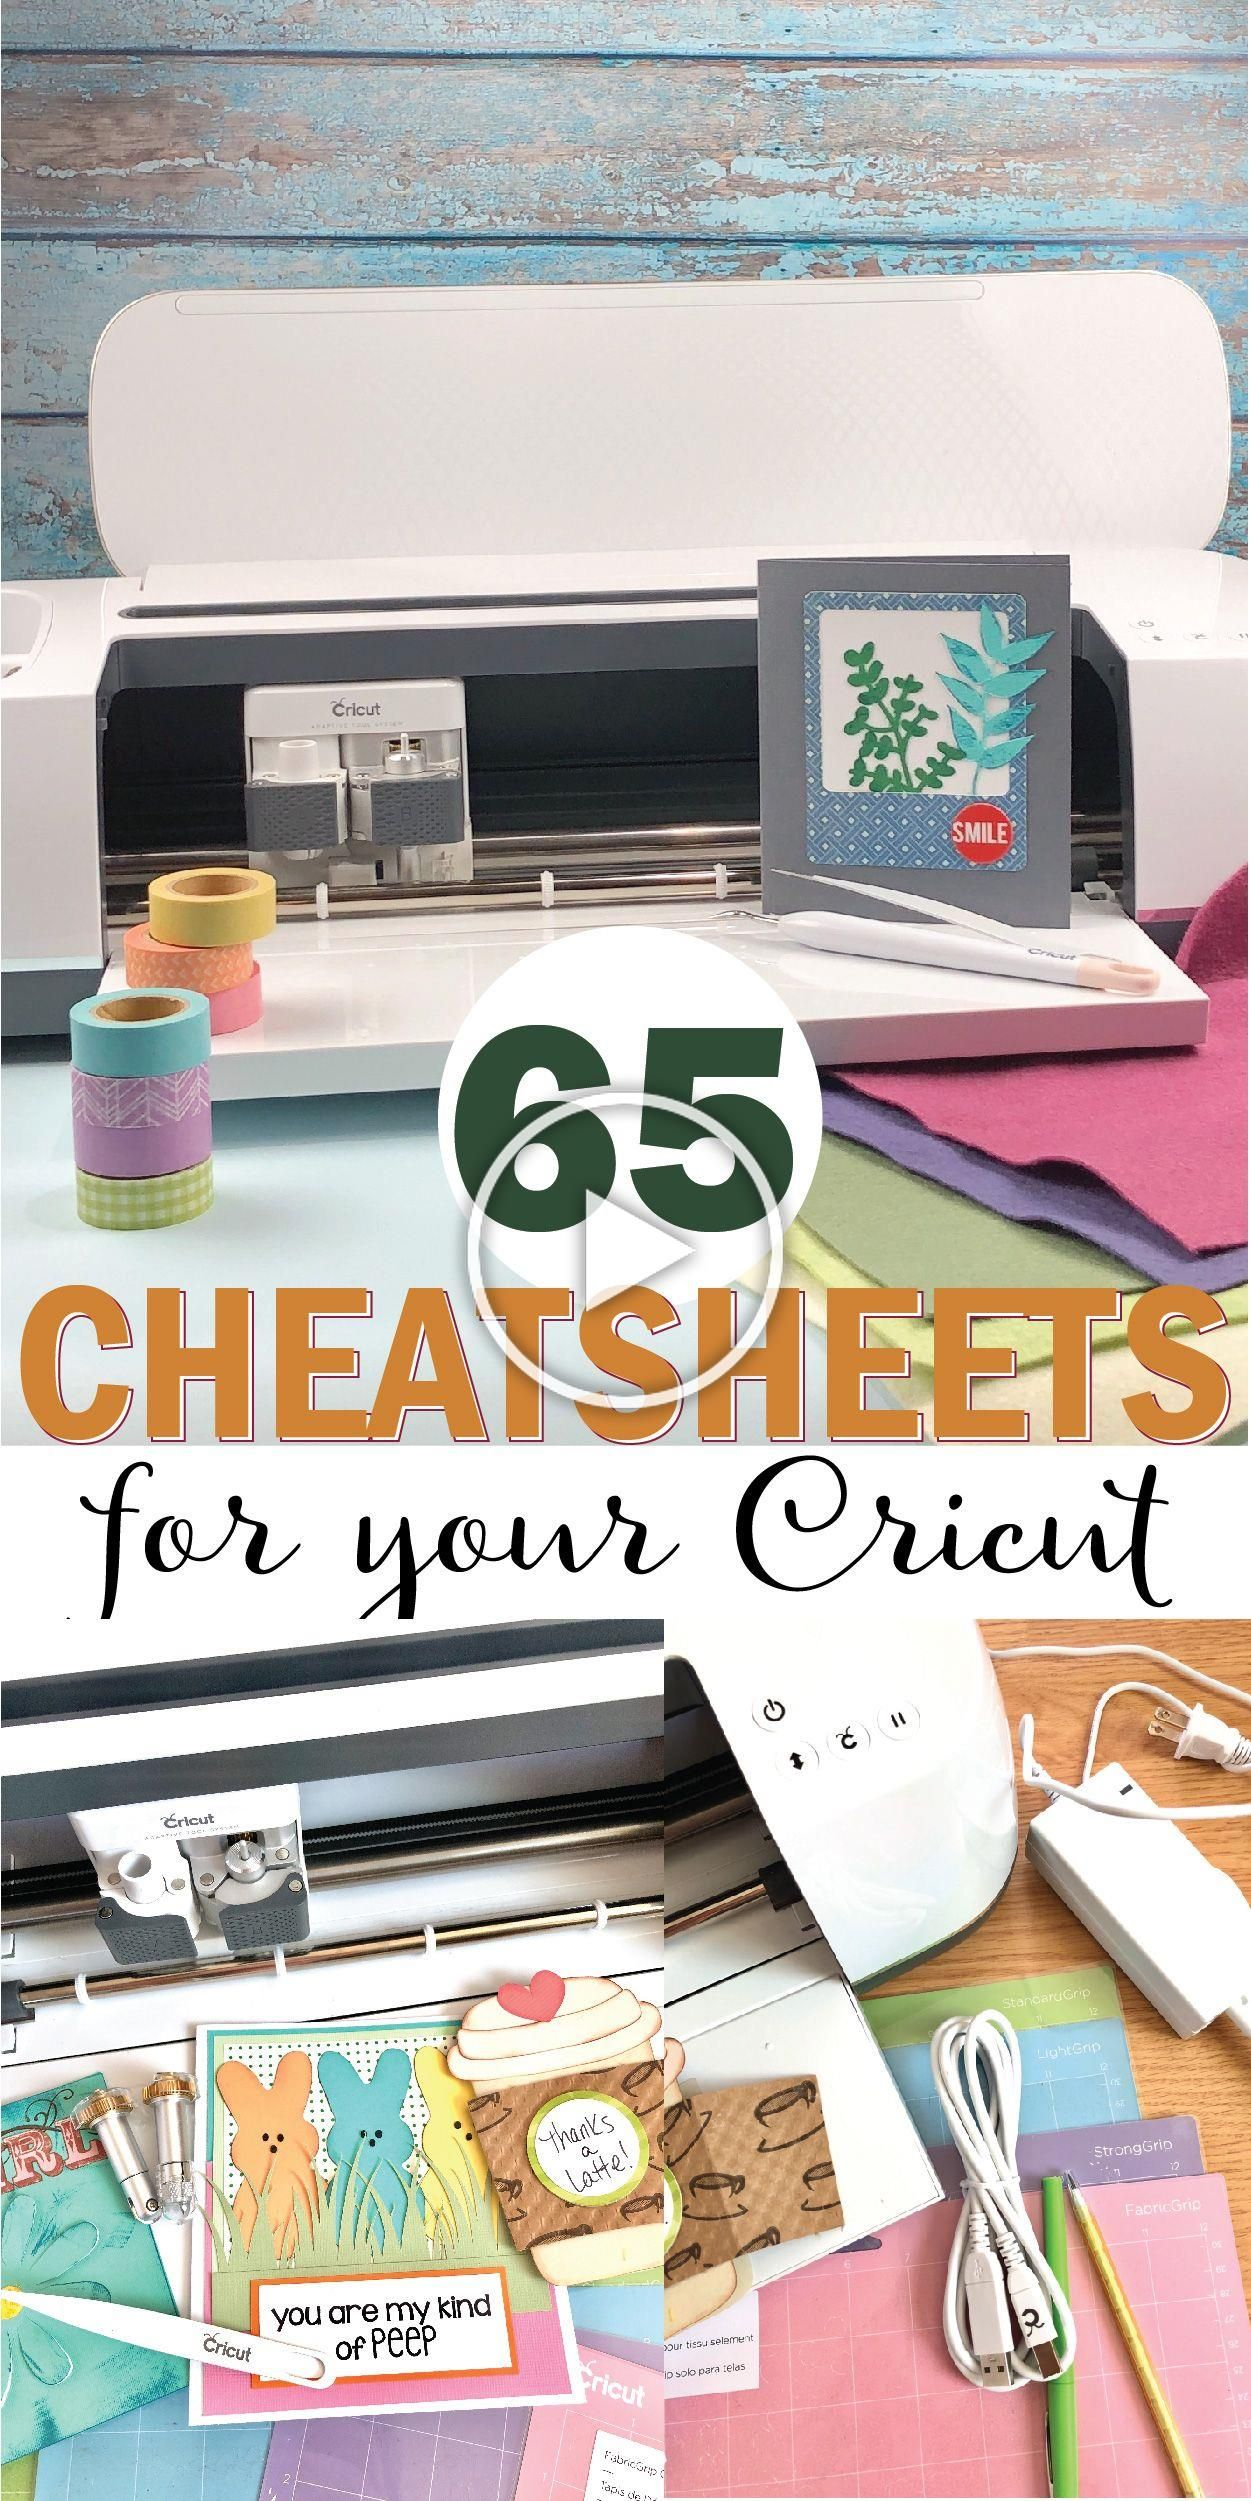 Easy beginners guide for cricut machines and cricut design